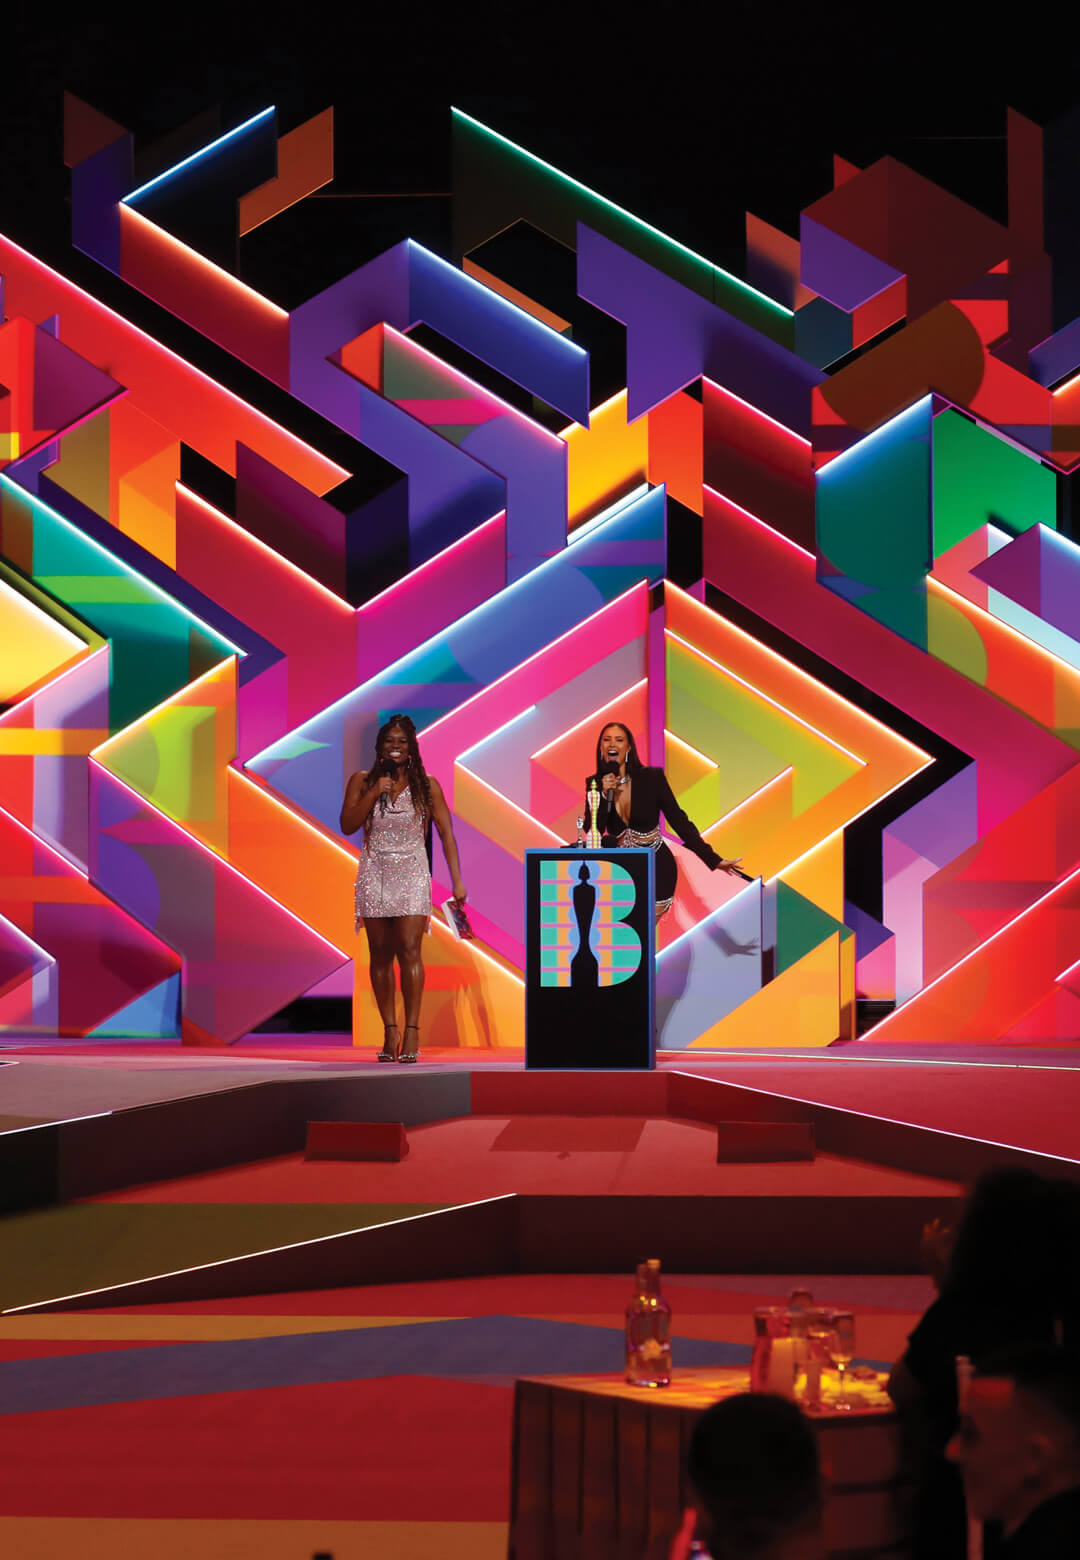 The 2021 BRIT Awards, held at London's O2 Arena, heralded the return of indoor events with a dazzling set design characterised by a maze of coloured volumes | Yinka Ilori and Es Devlin podium design for the 2021 BRIT Awards | STIRworld